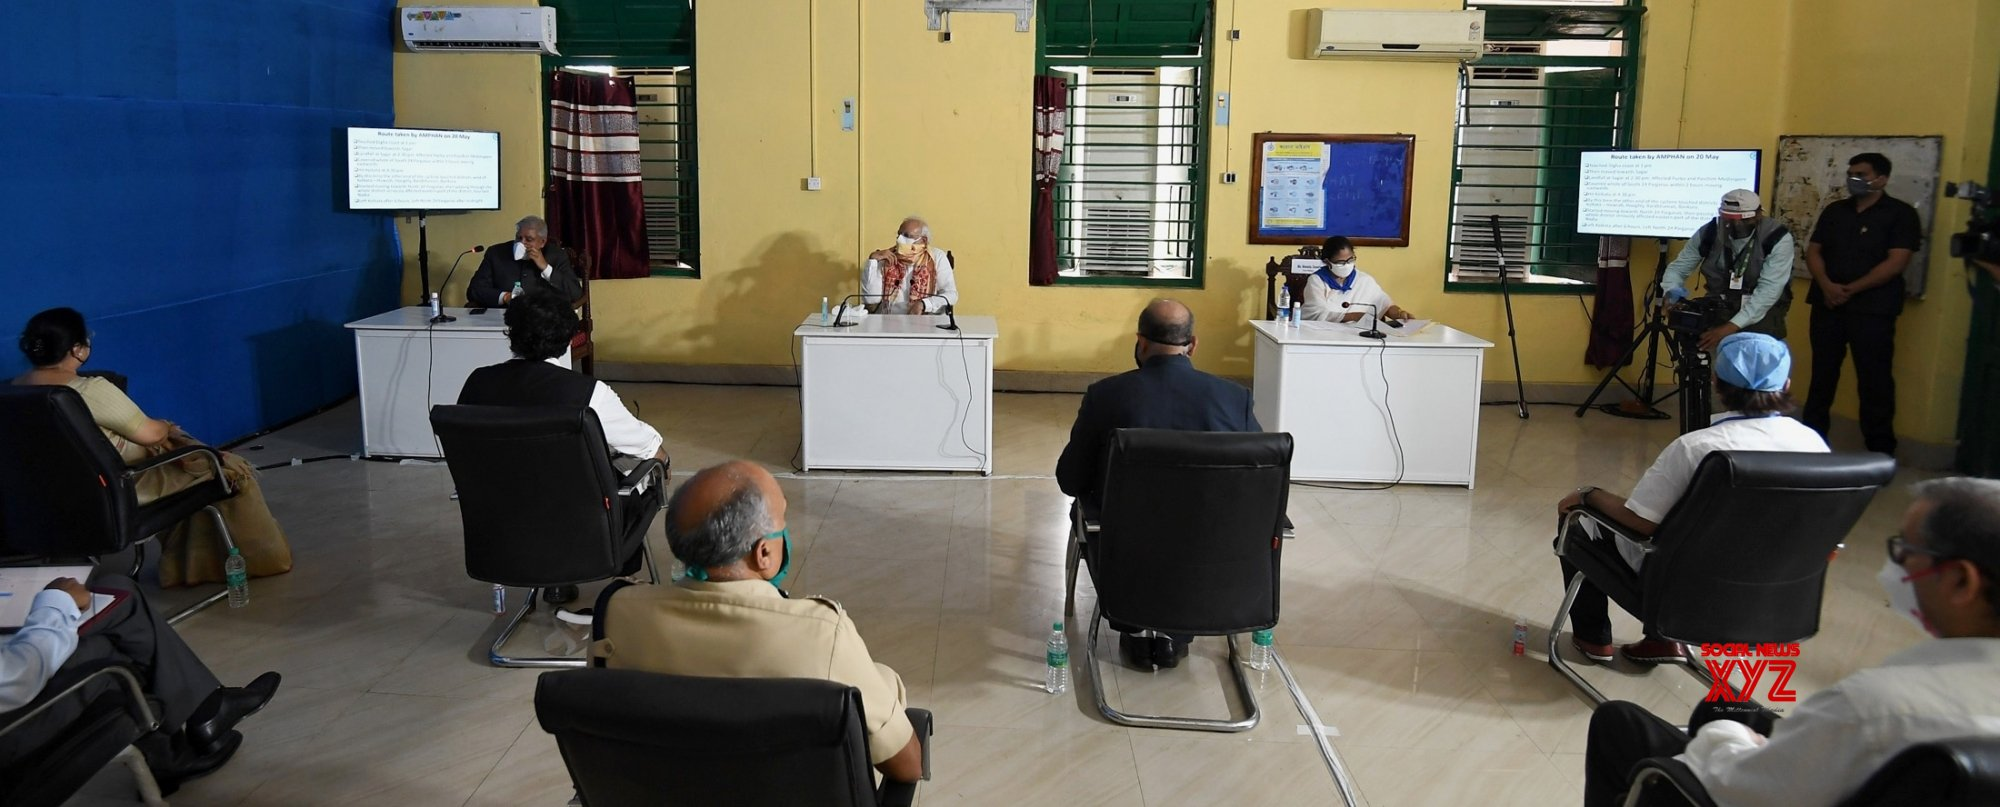 Basirhat: PM Modi holds review meeting after aerial survey of cyclone affected areas of WB #Gallery